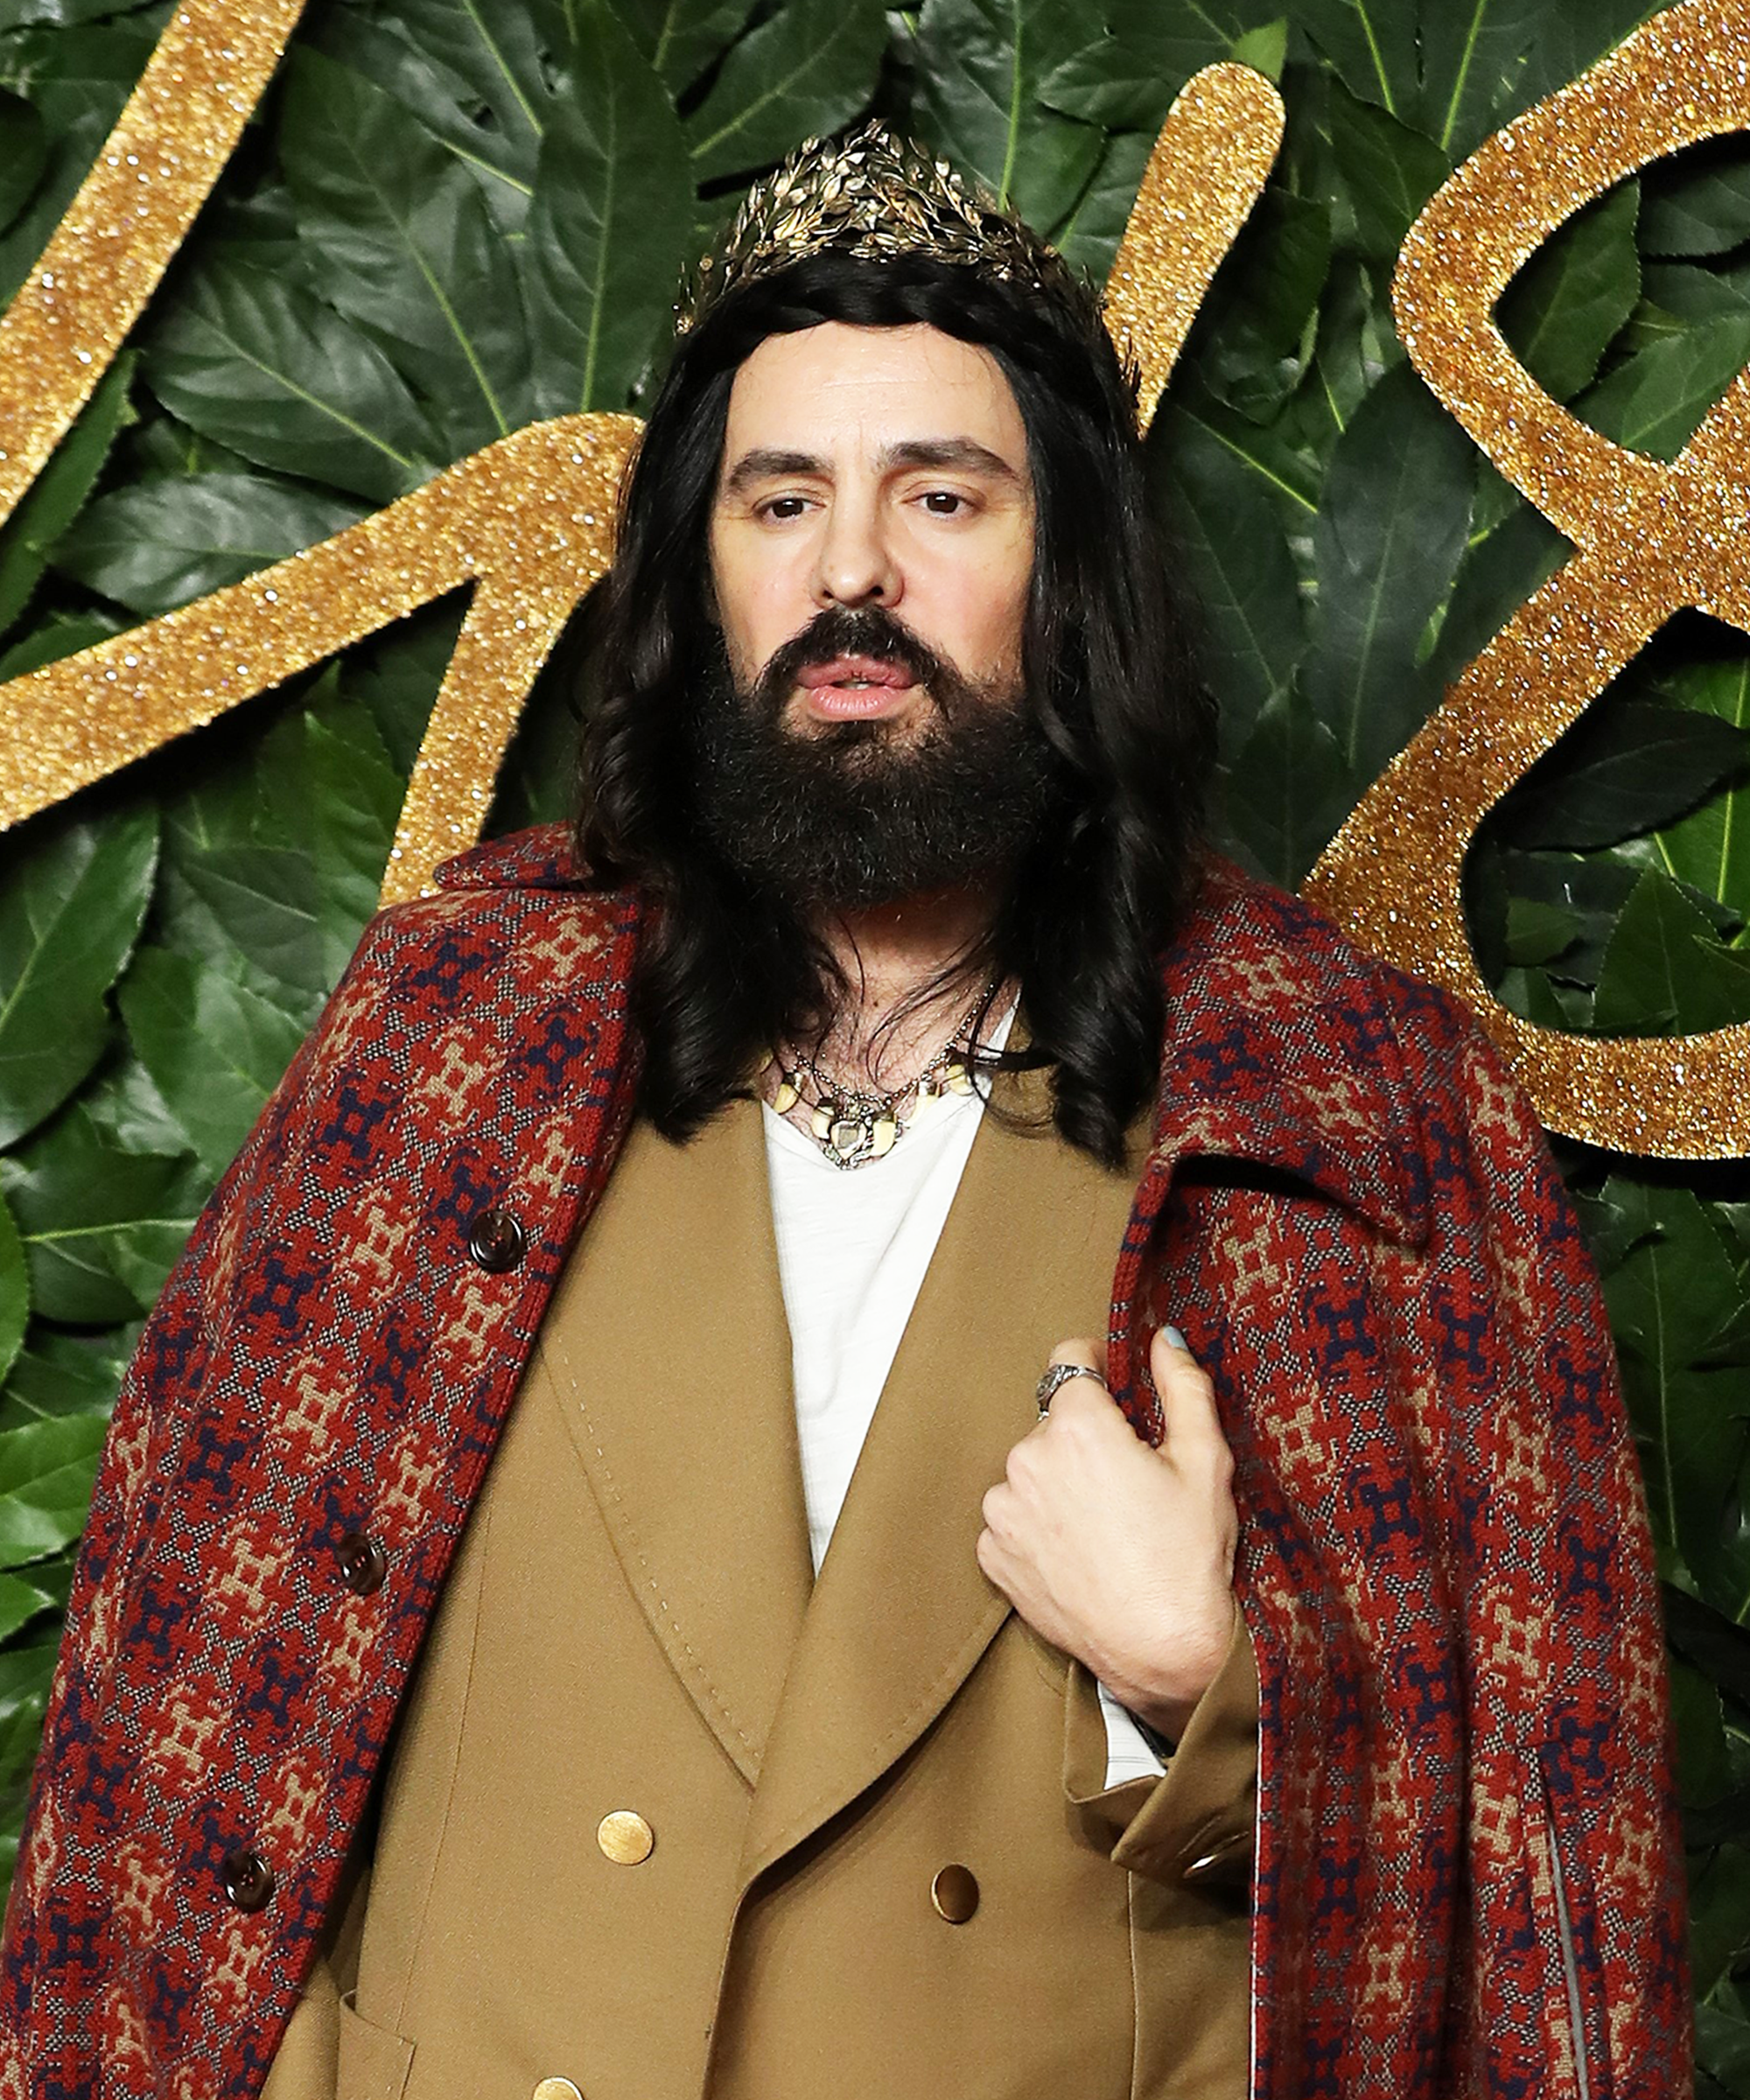 Gucci's Alessandro Michele Speaks Out About The Sweater Resembling Blackface